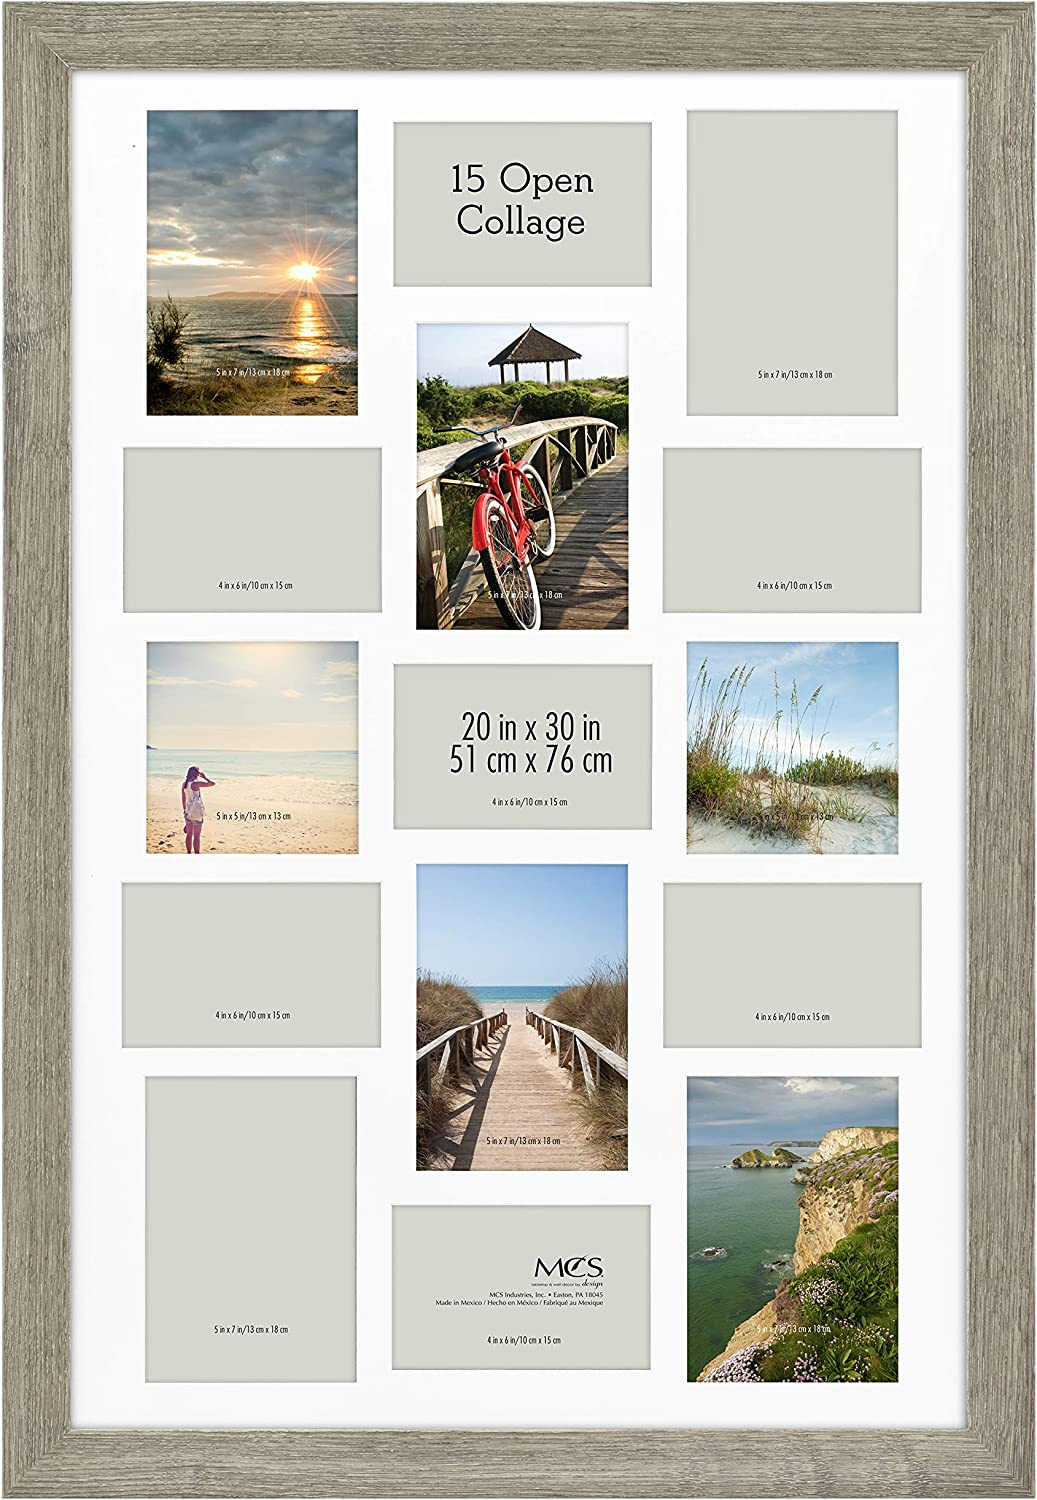 MCS Museum Collage Poster Frame, 20 x 30 in, Barnwood